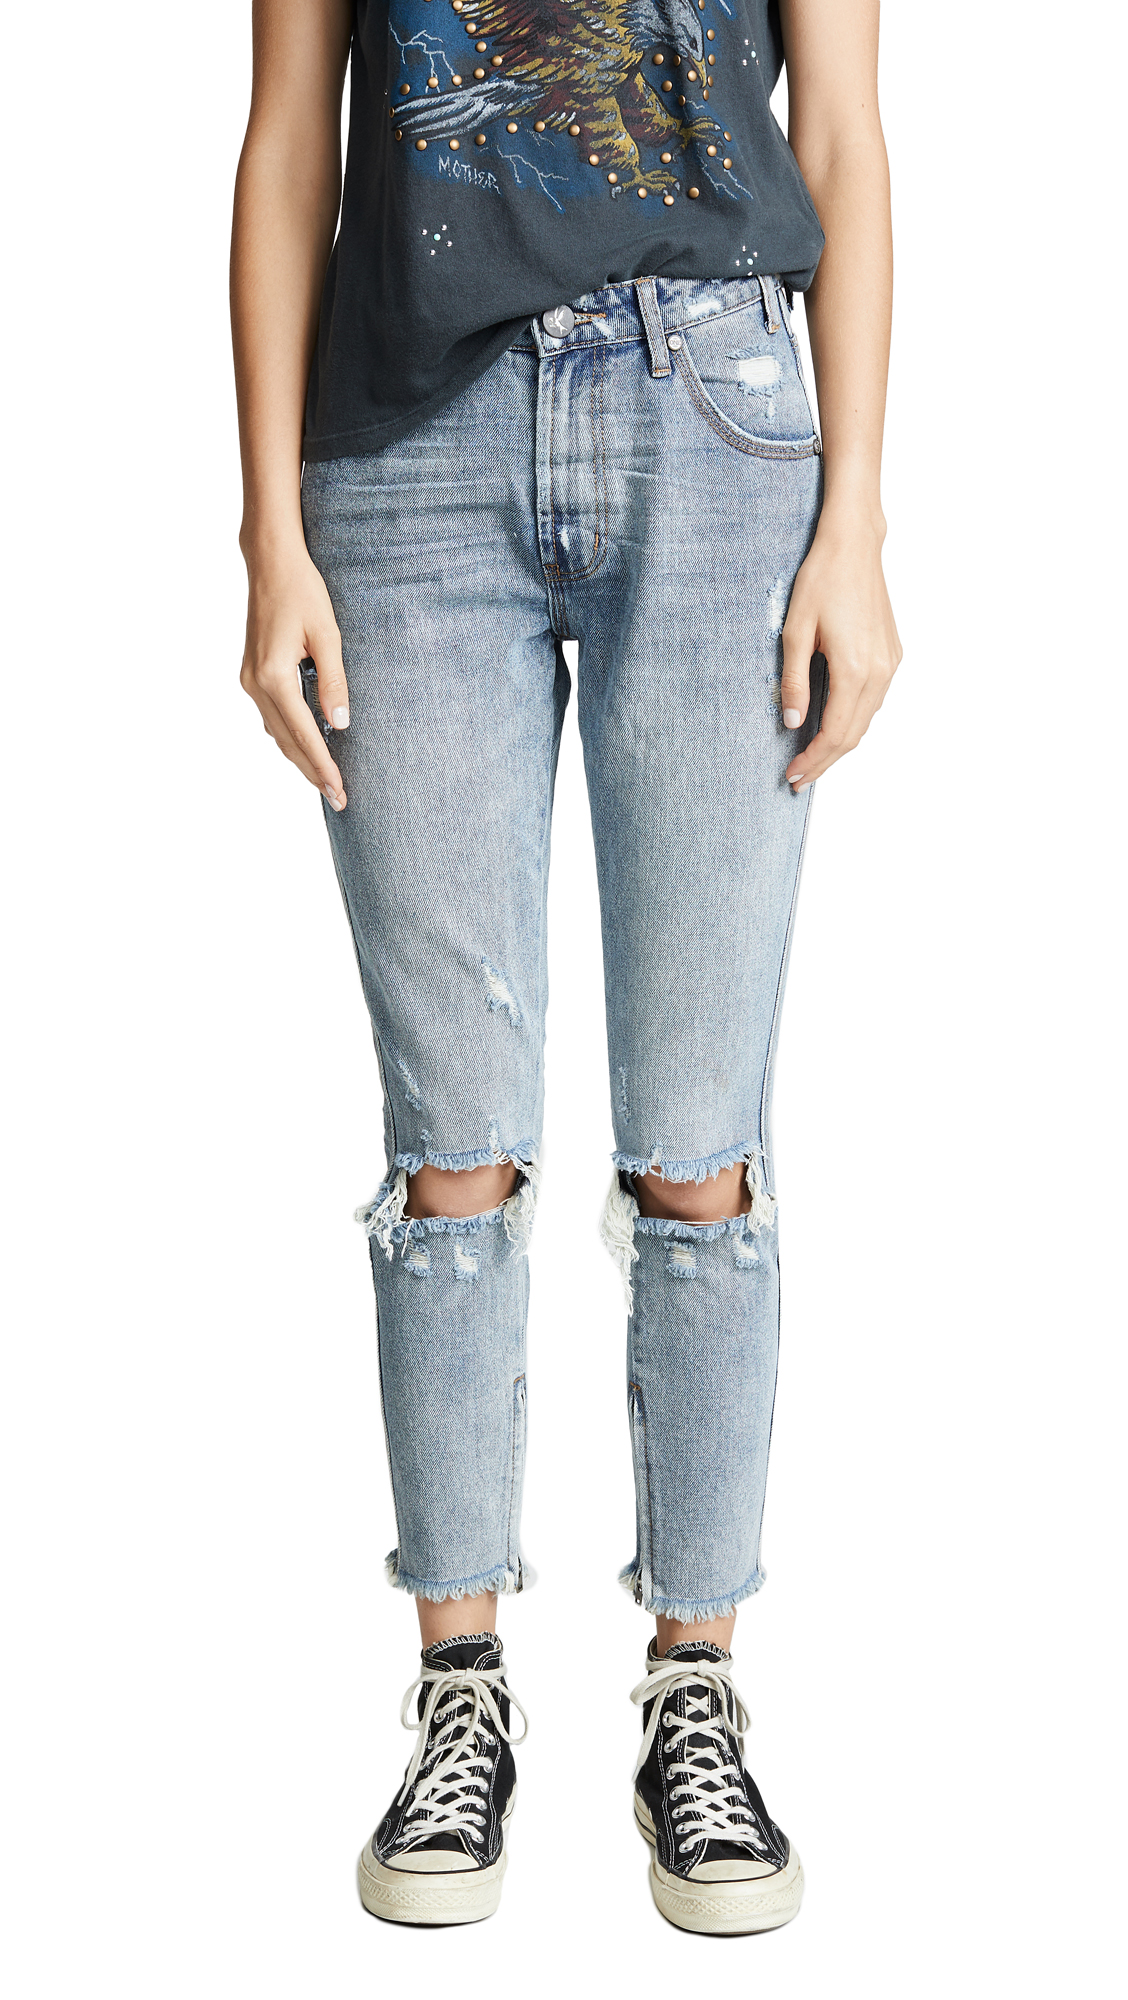 One Teaspoon Storm Boy Freebirds High Waist Skinny Jeans In Storm Boy